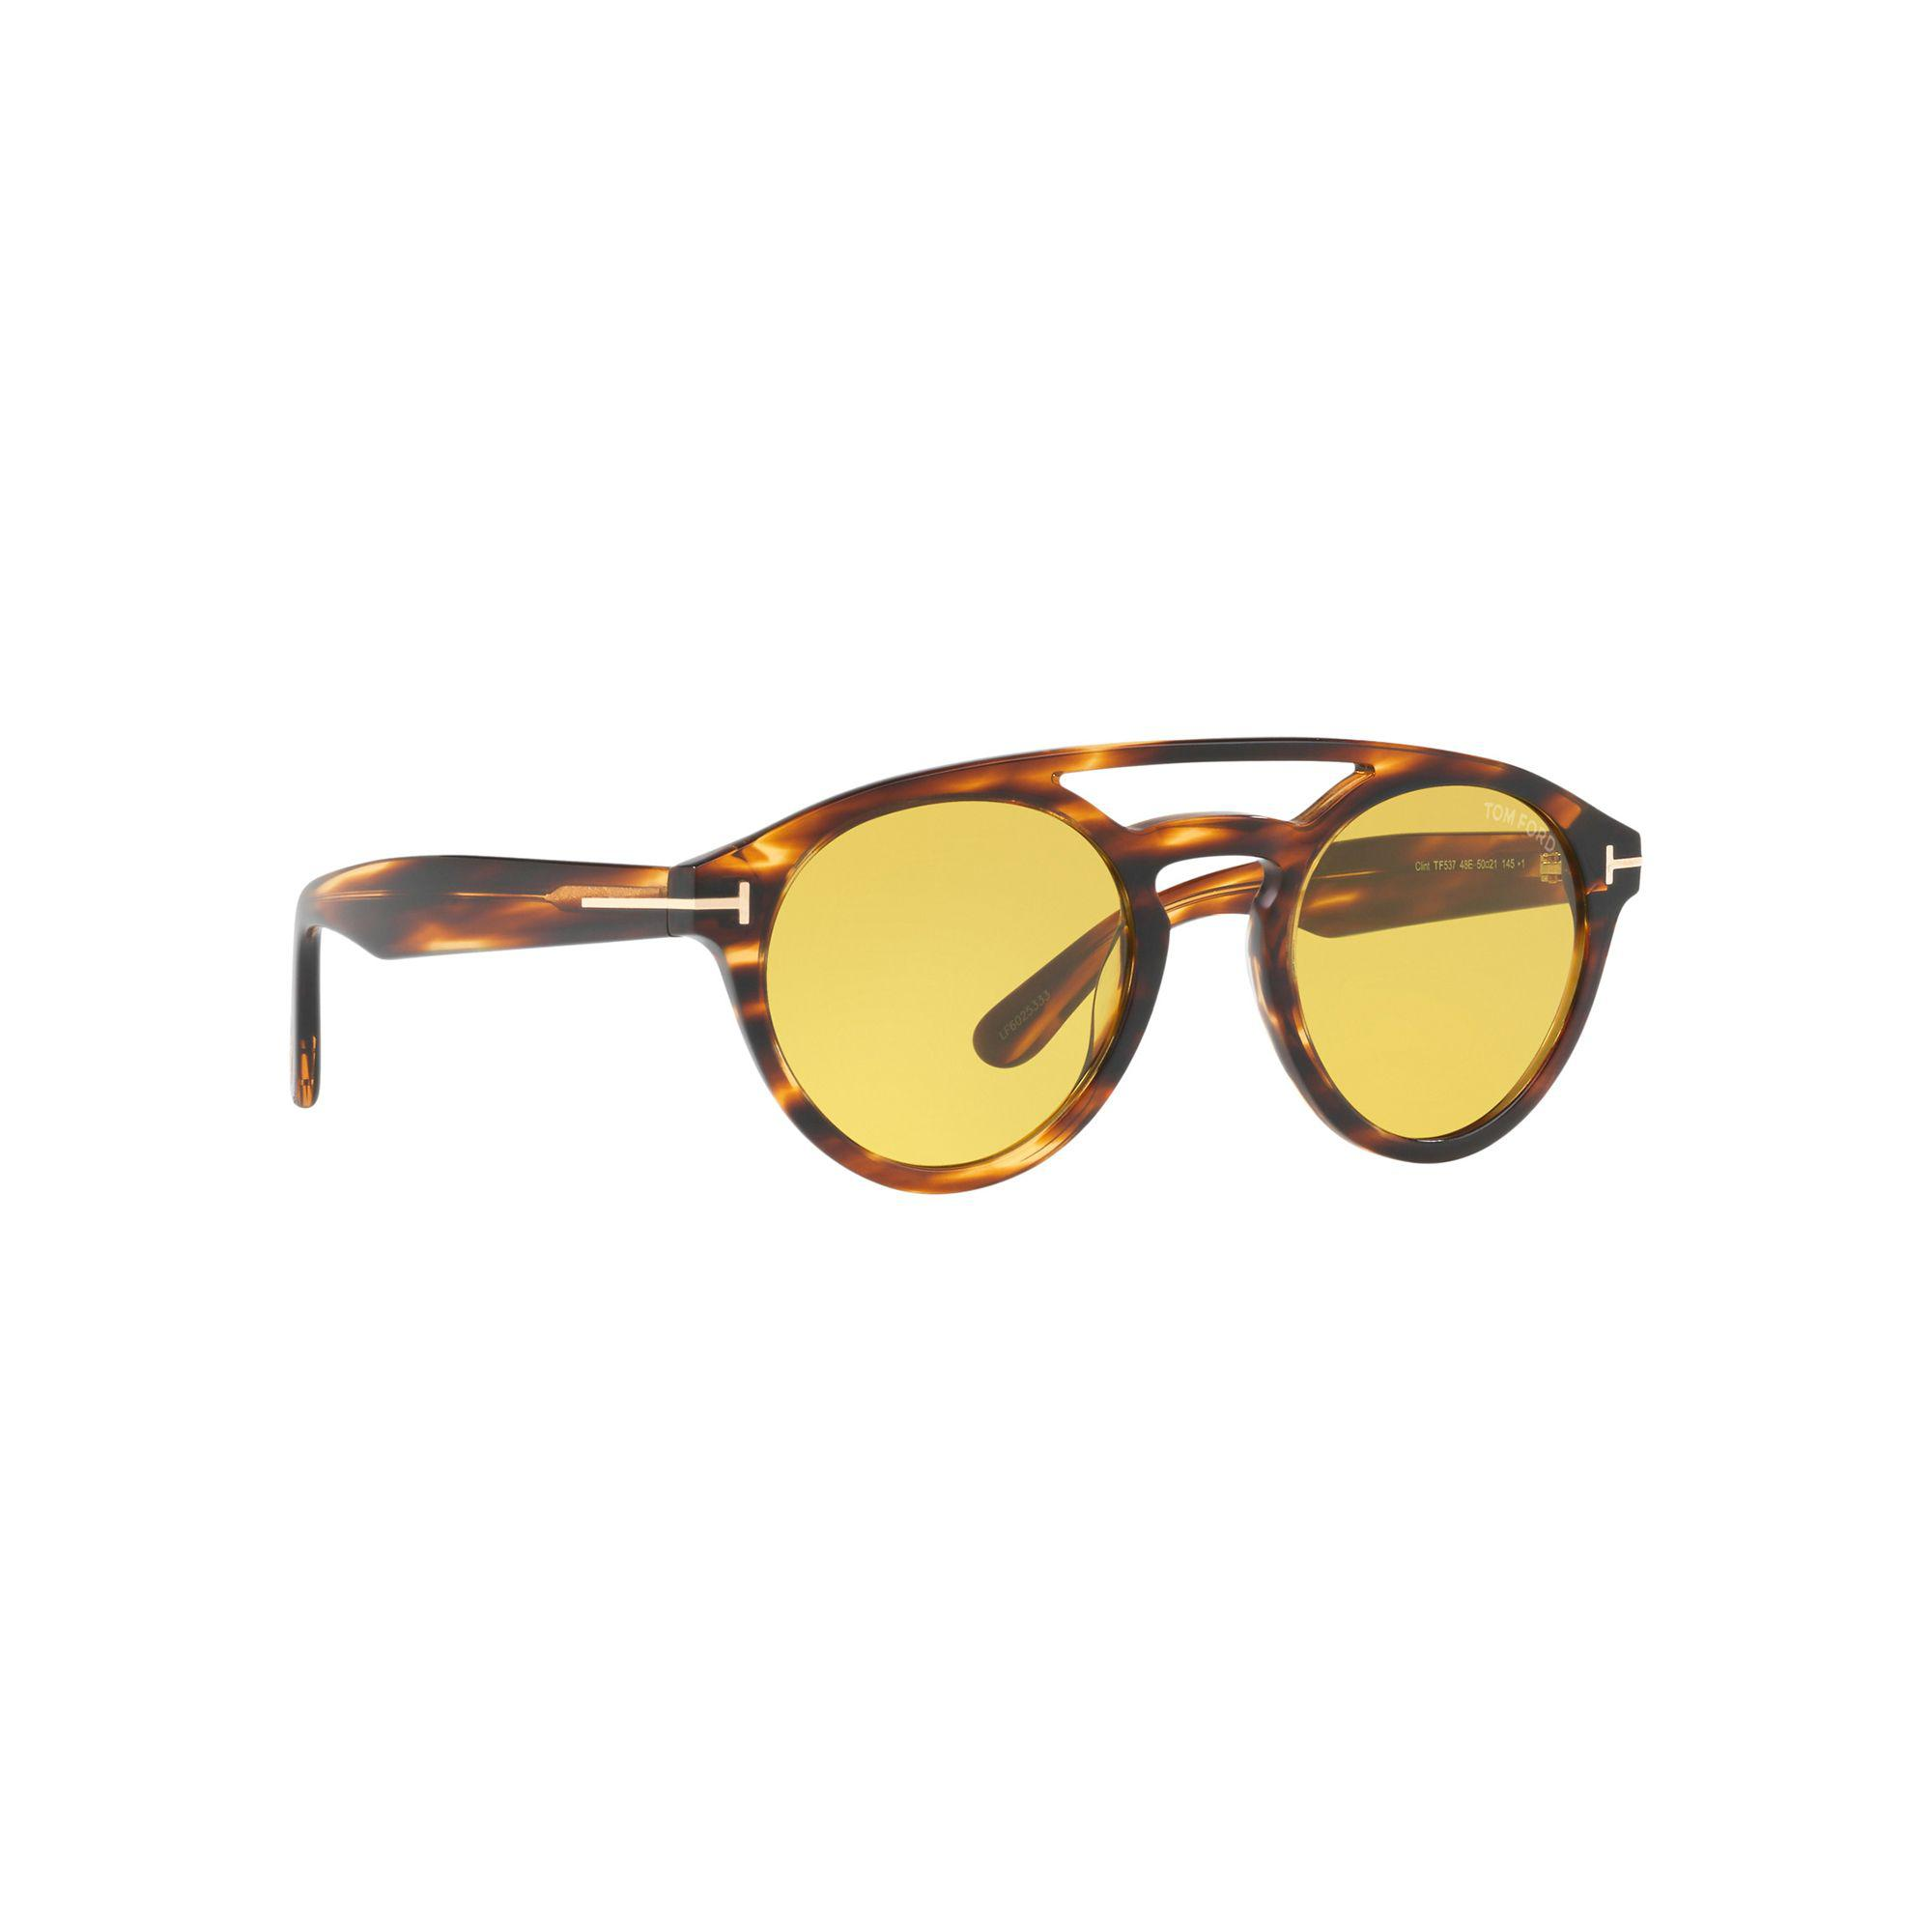 278e8647975b Tom Ford Brown Ft0537 Round Sunglasses in Brown for Men - Lyst